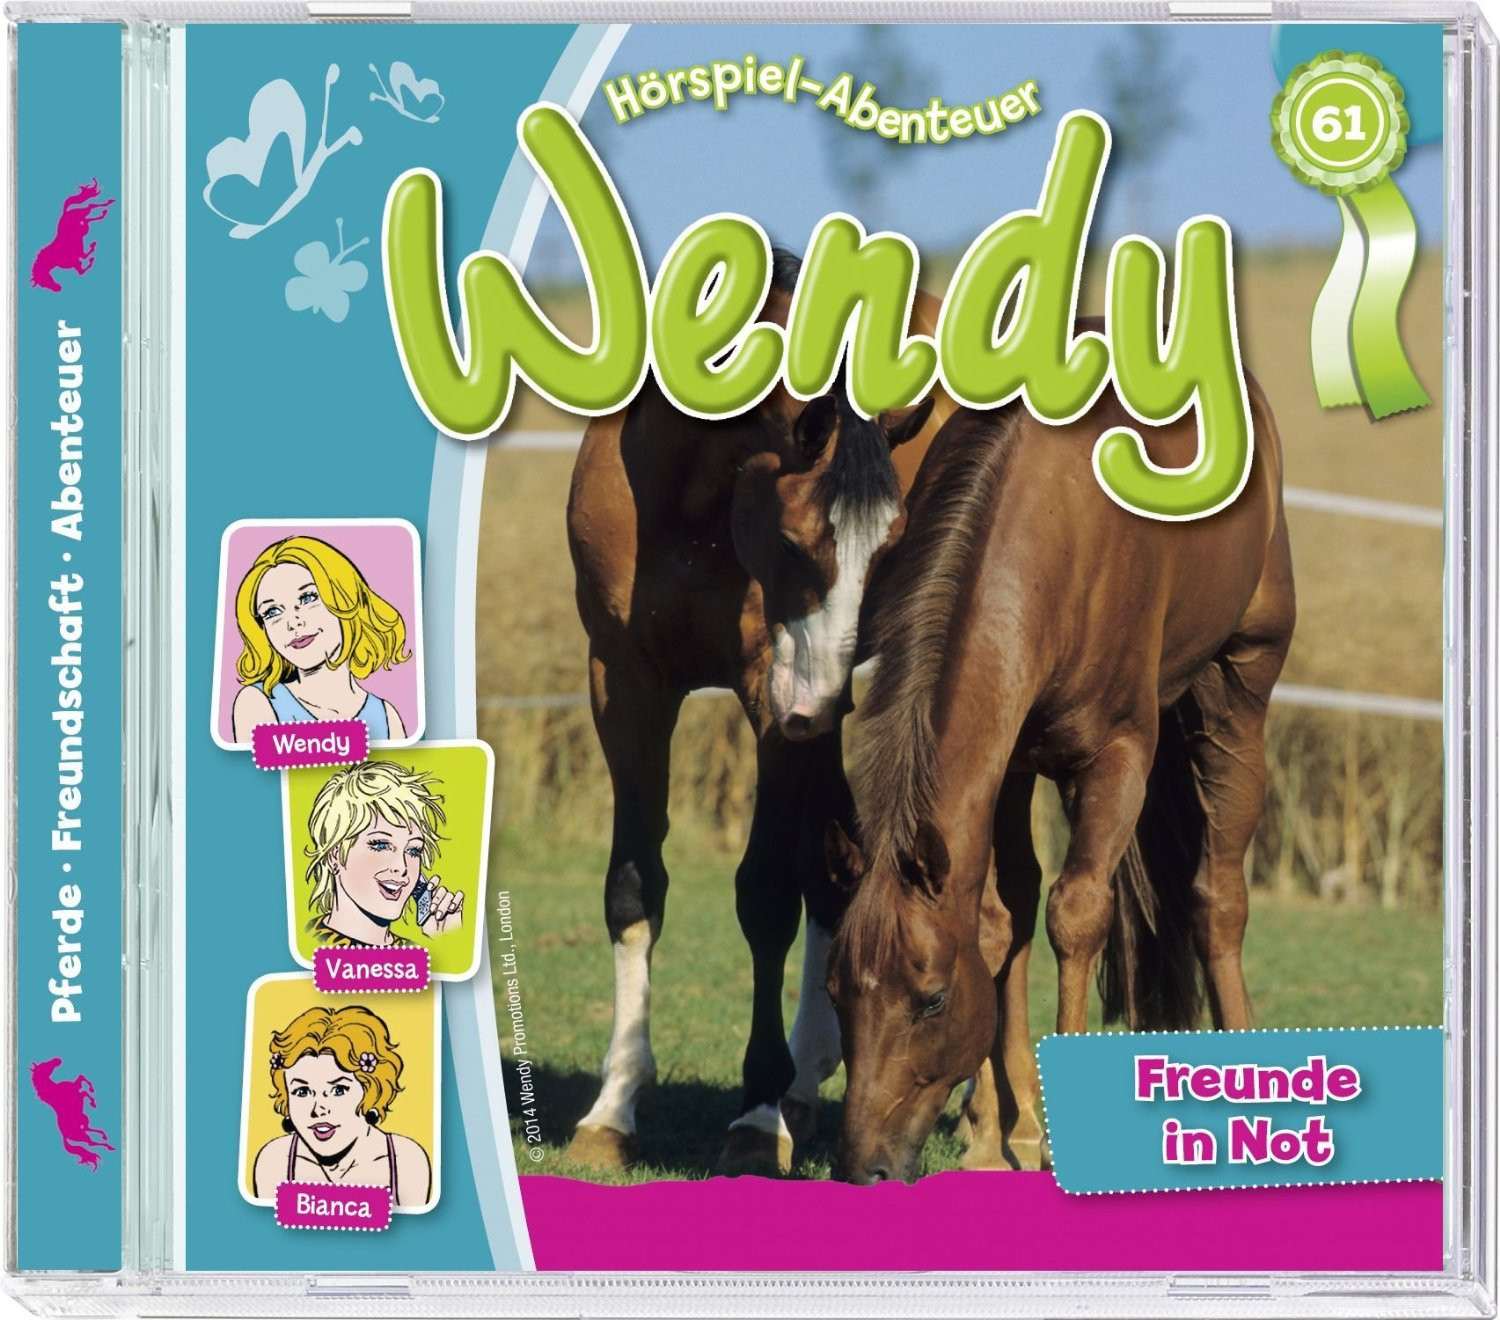 Wendy Folge 61 - Freunde in Not